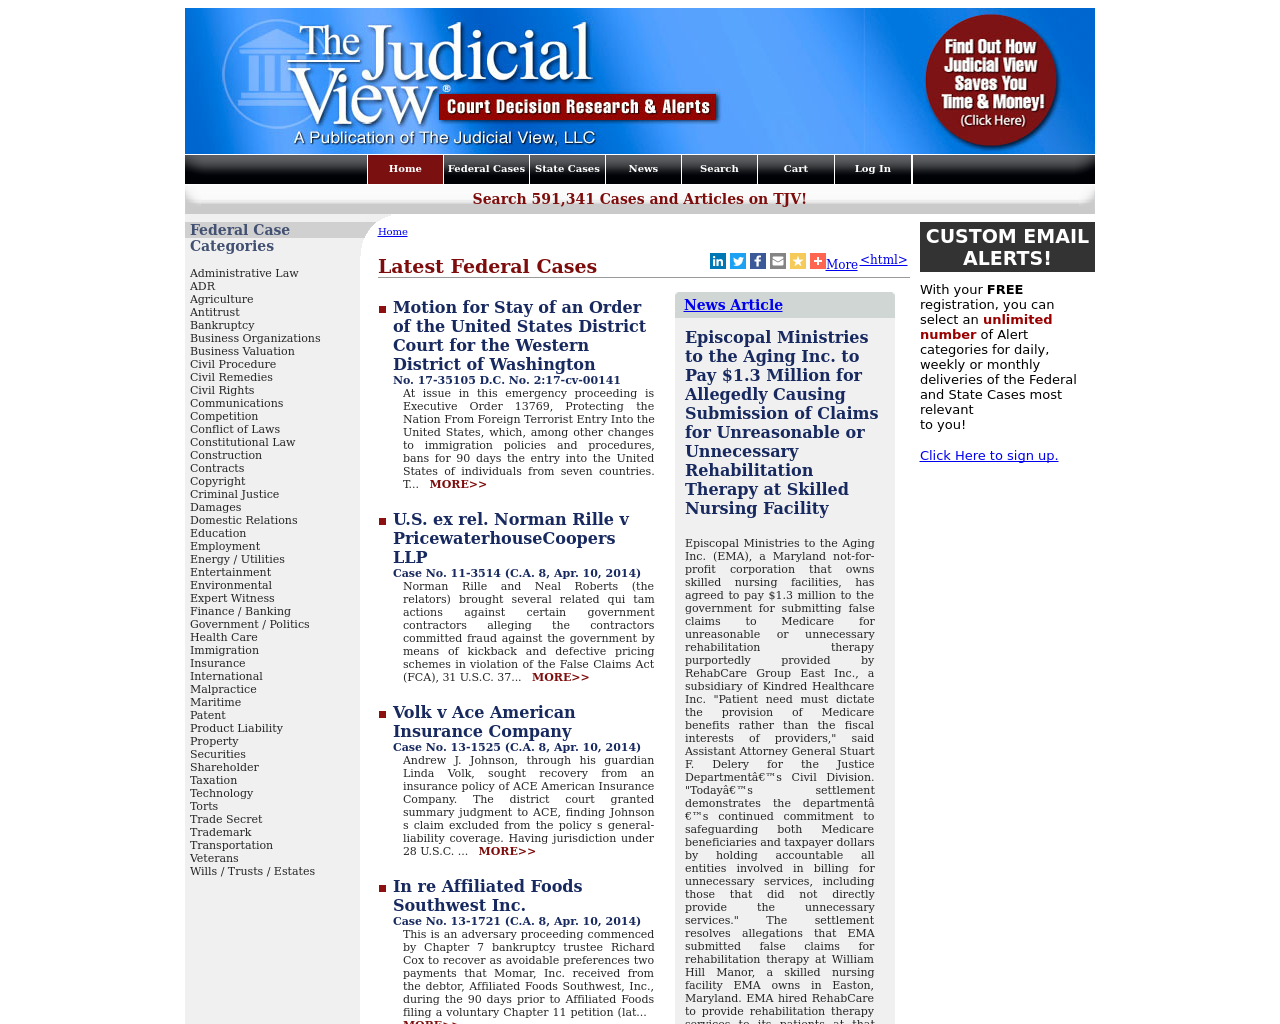 The-Judicial-View-Advertising-Reviews-Pricing